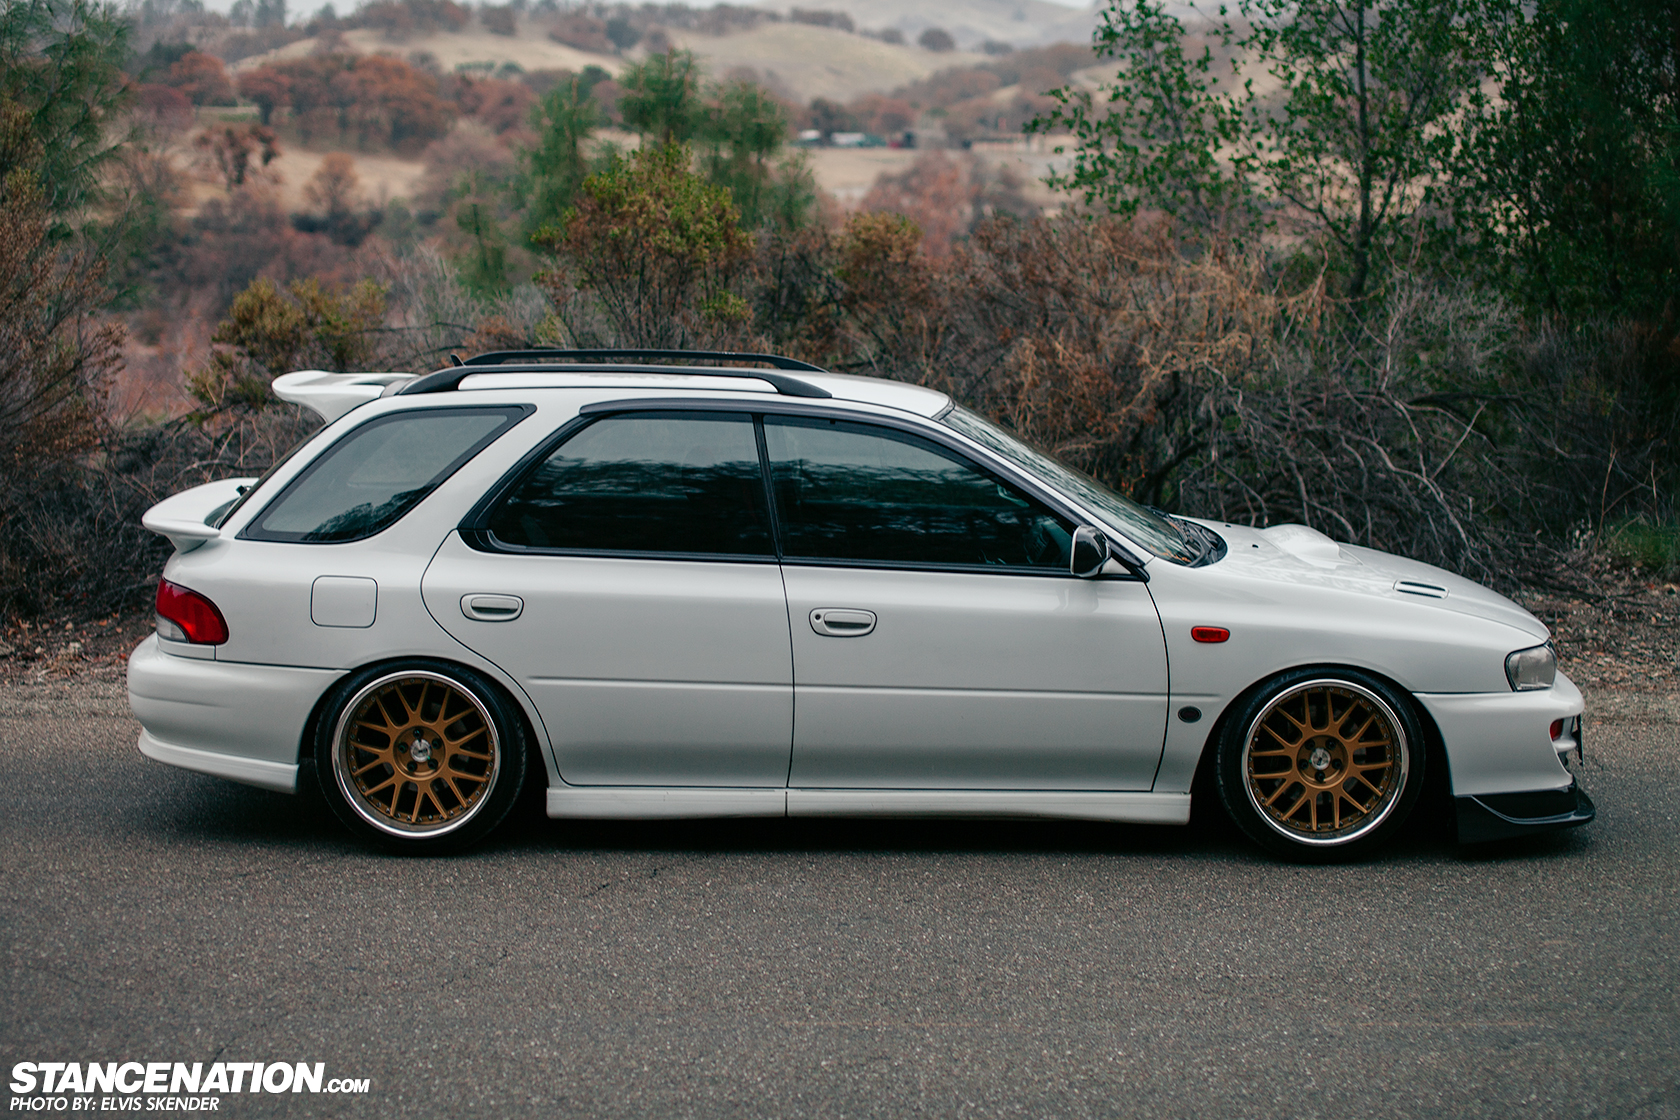 refined modesty kenji rhd subaru wrx sti stancenation form function. Black Bedroom Furniture Sets. Home Design Ideas